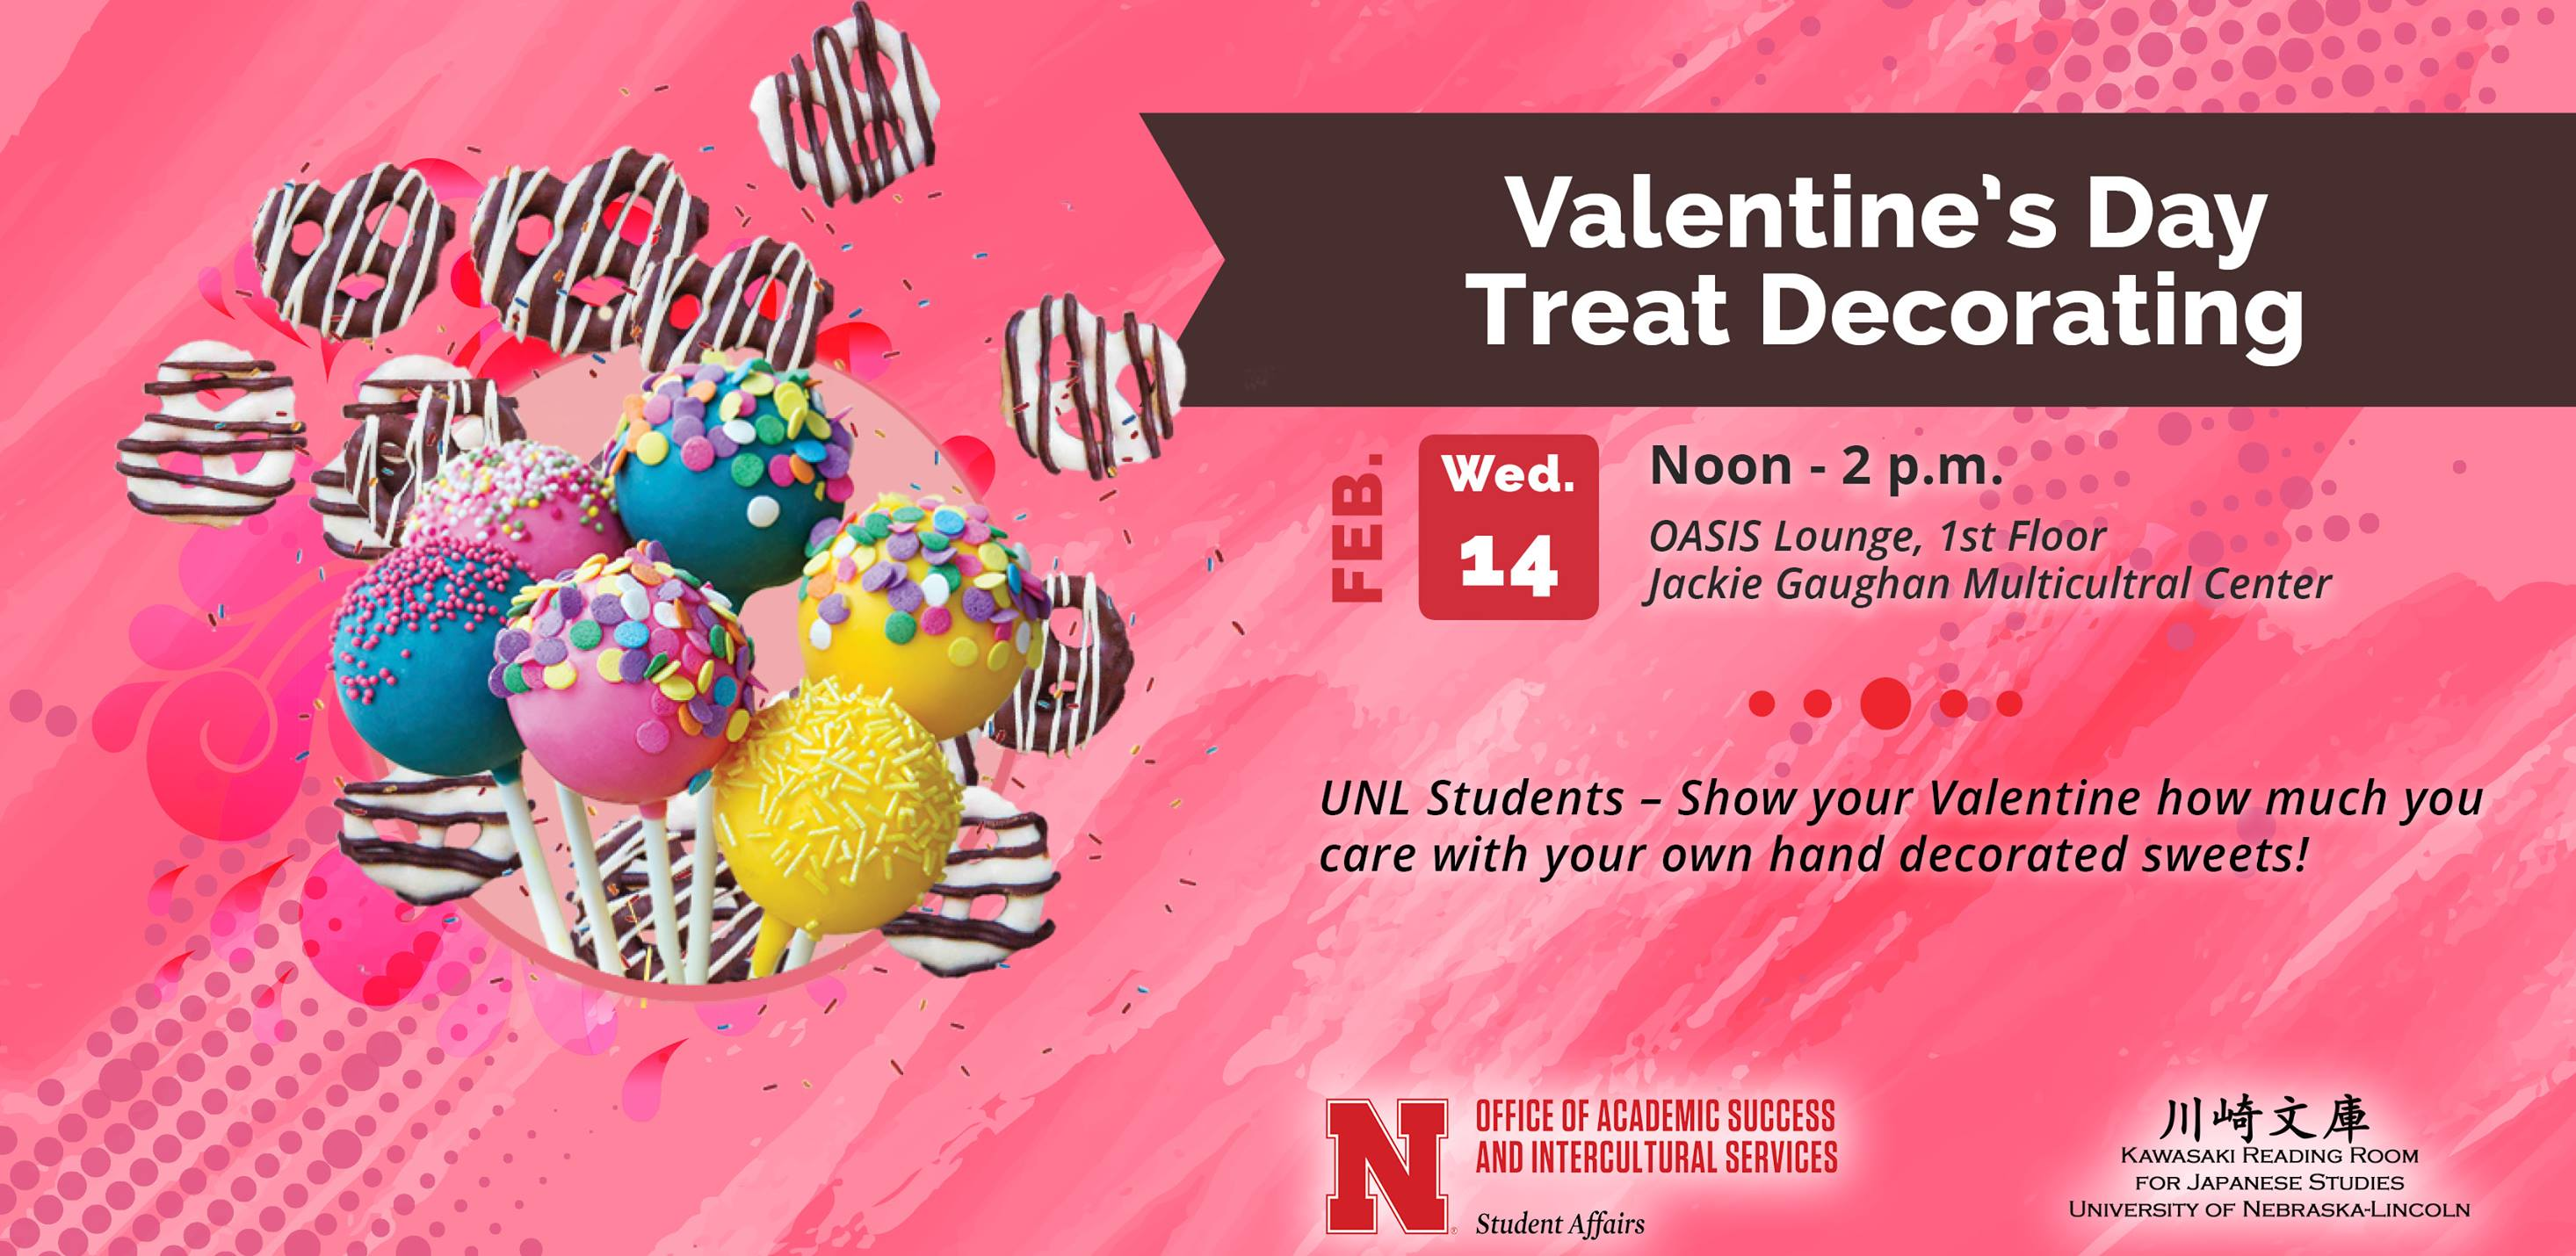 Valentine's Day Treat Decorating Flier